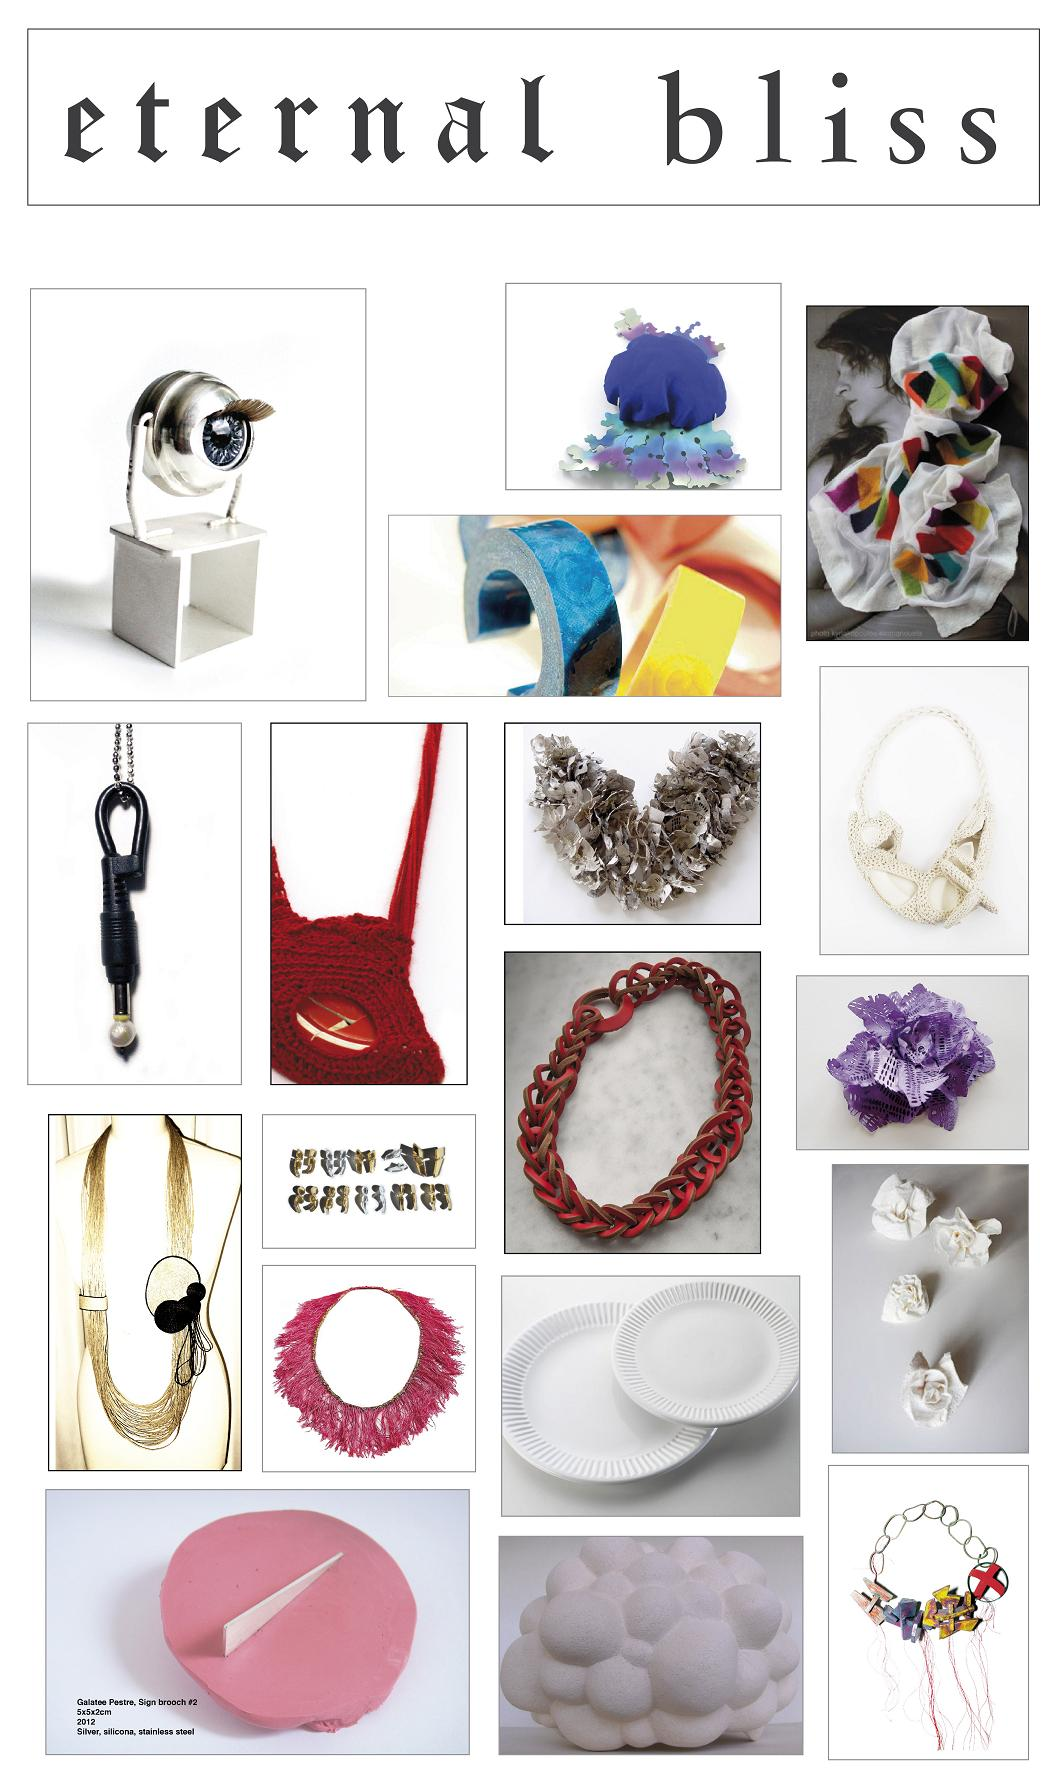 eternal bliss CONTEMPORARY JEWELLERY EXHIBITION ATHENS EL.MARNERI GALERIE